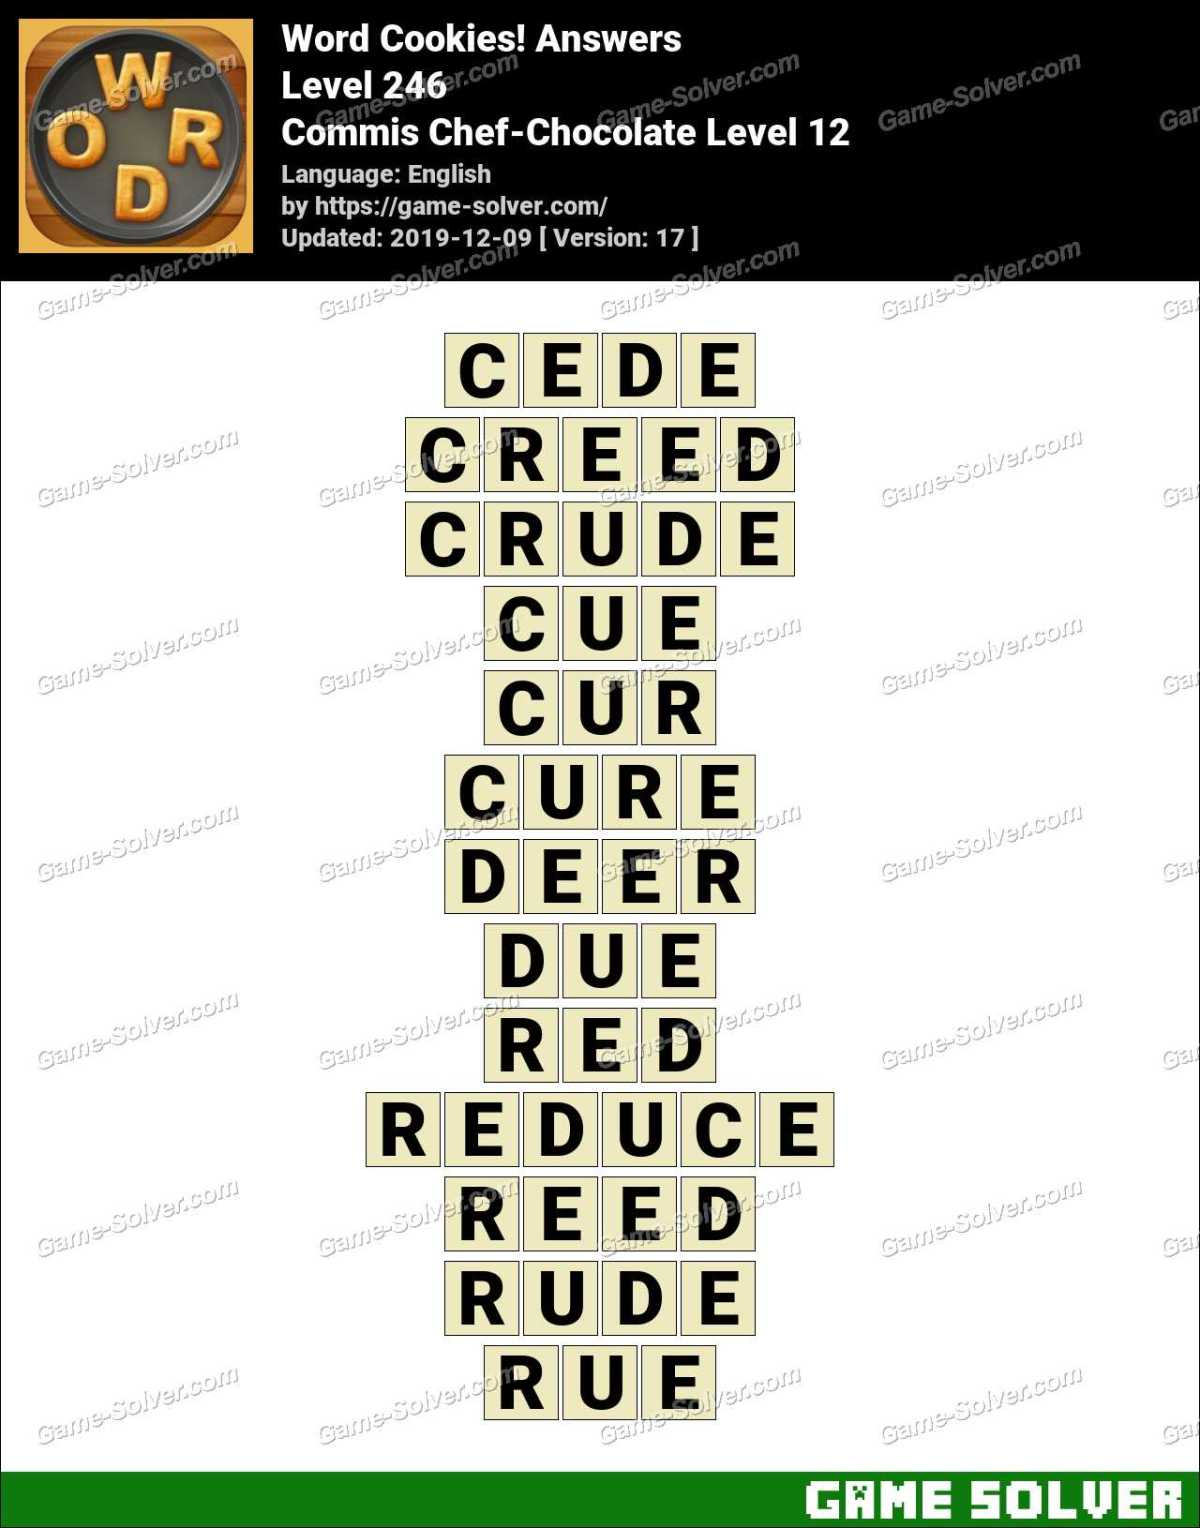 Word Cookies Commis Chef-Chocolate Level 12 Answers